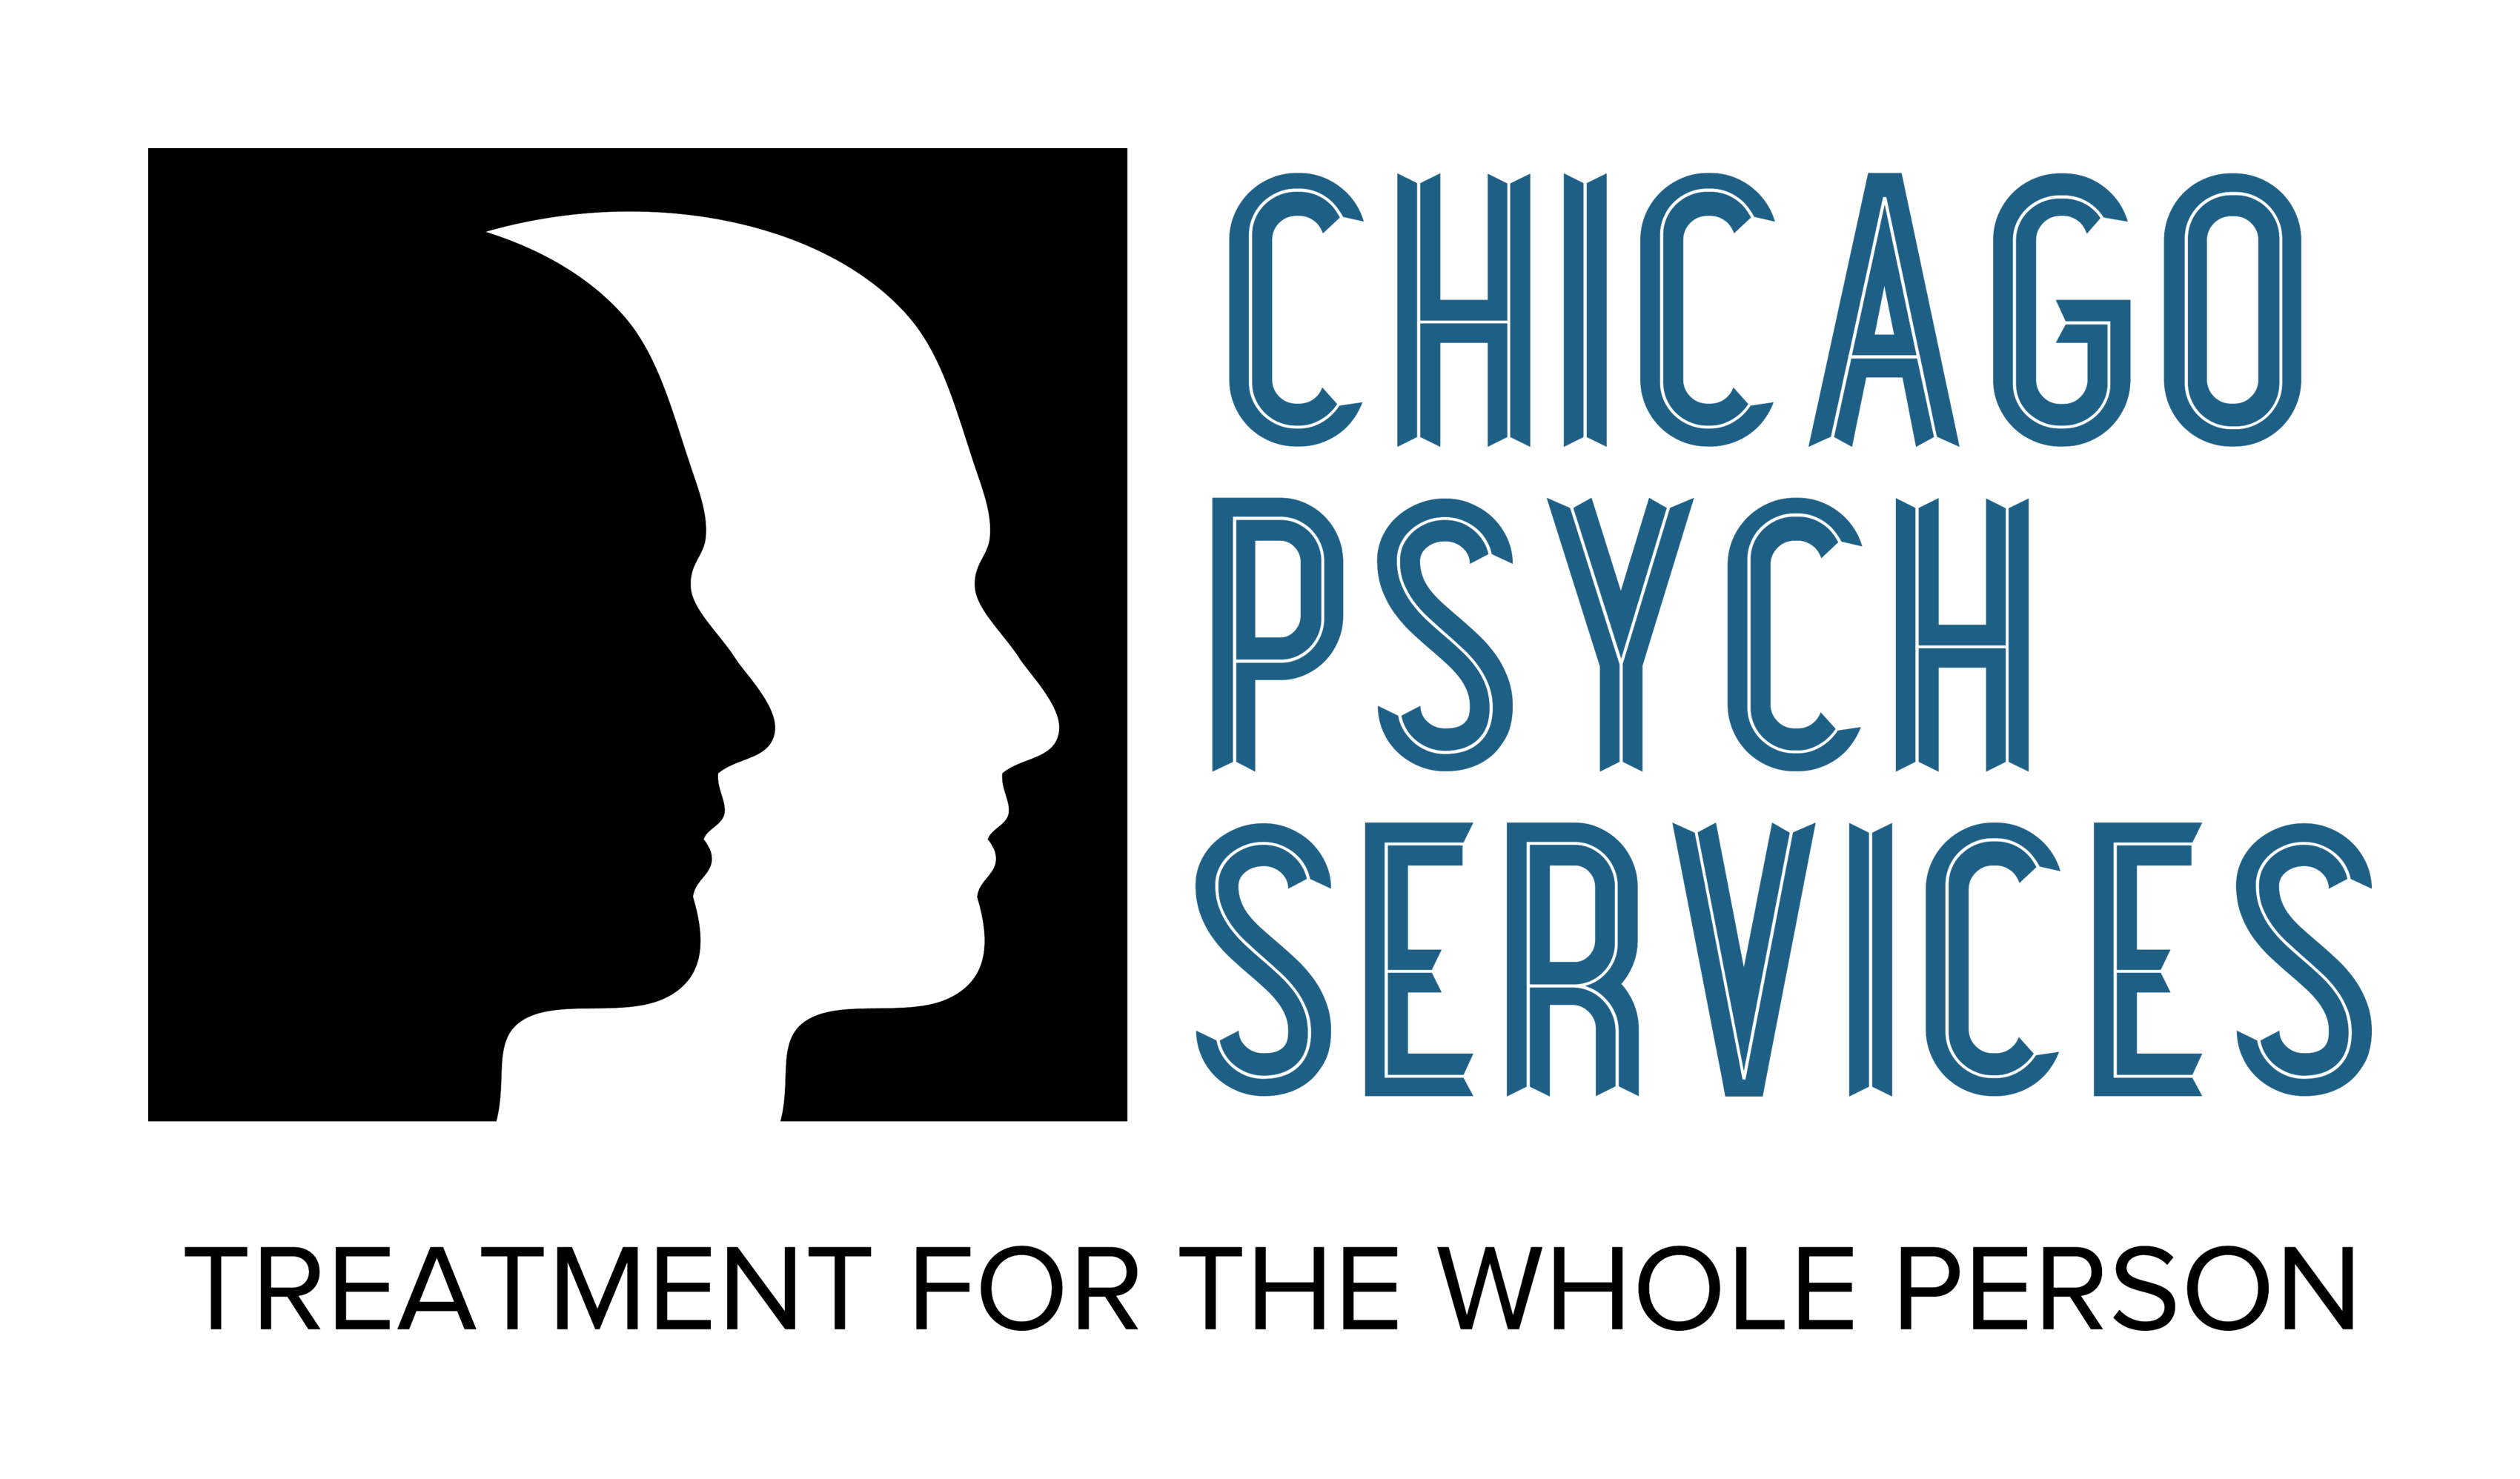 Chicago Psychology Blog